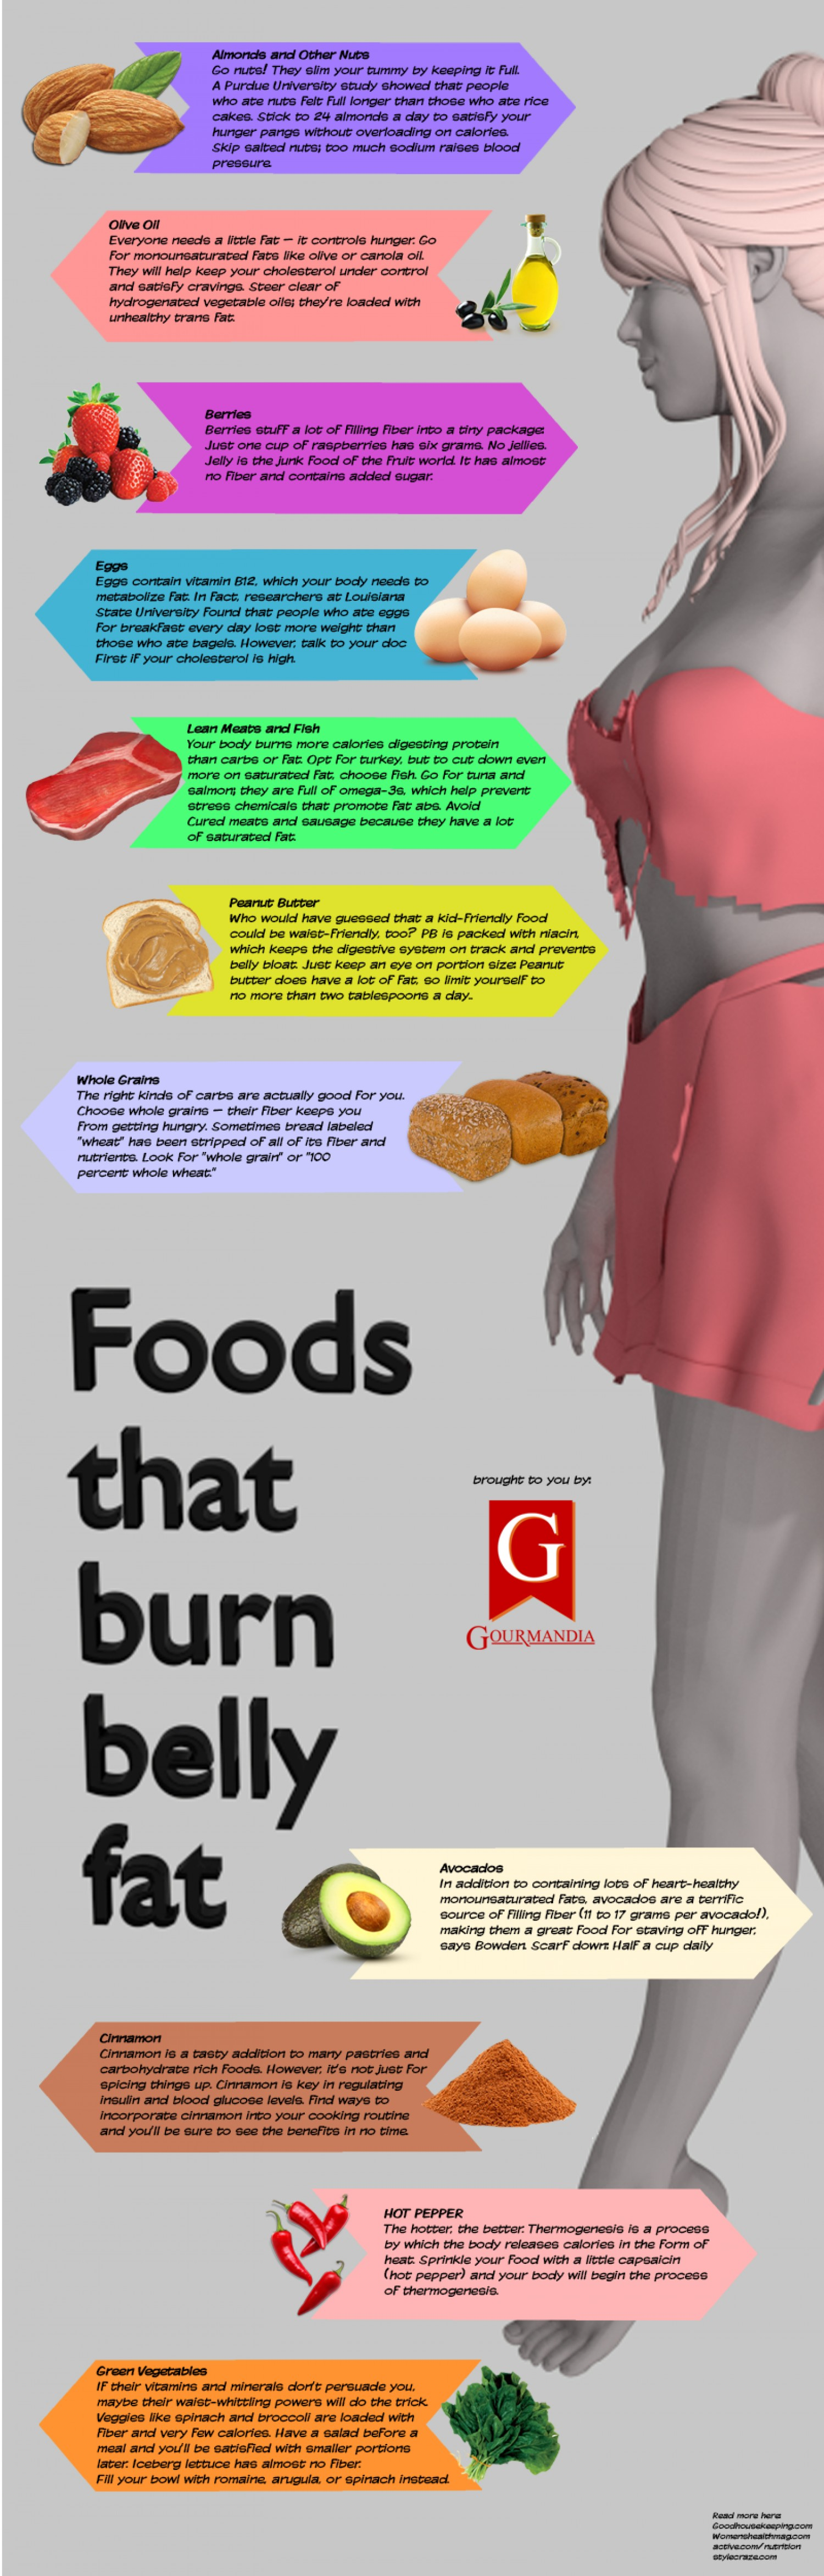 Ffoods-that-burn-belly-fat